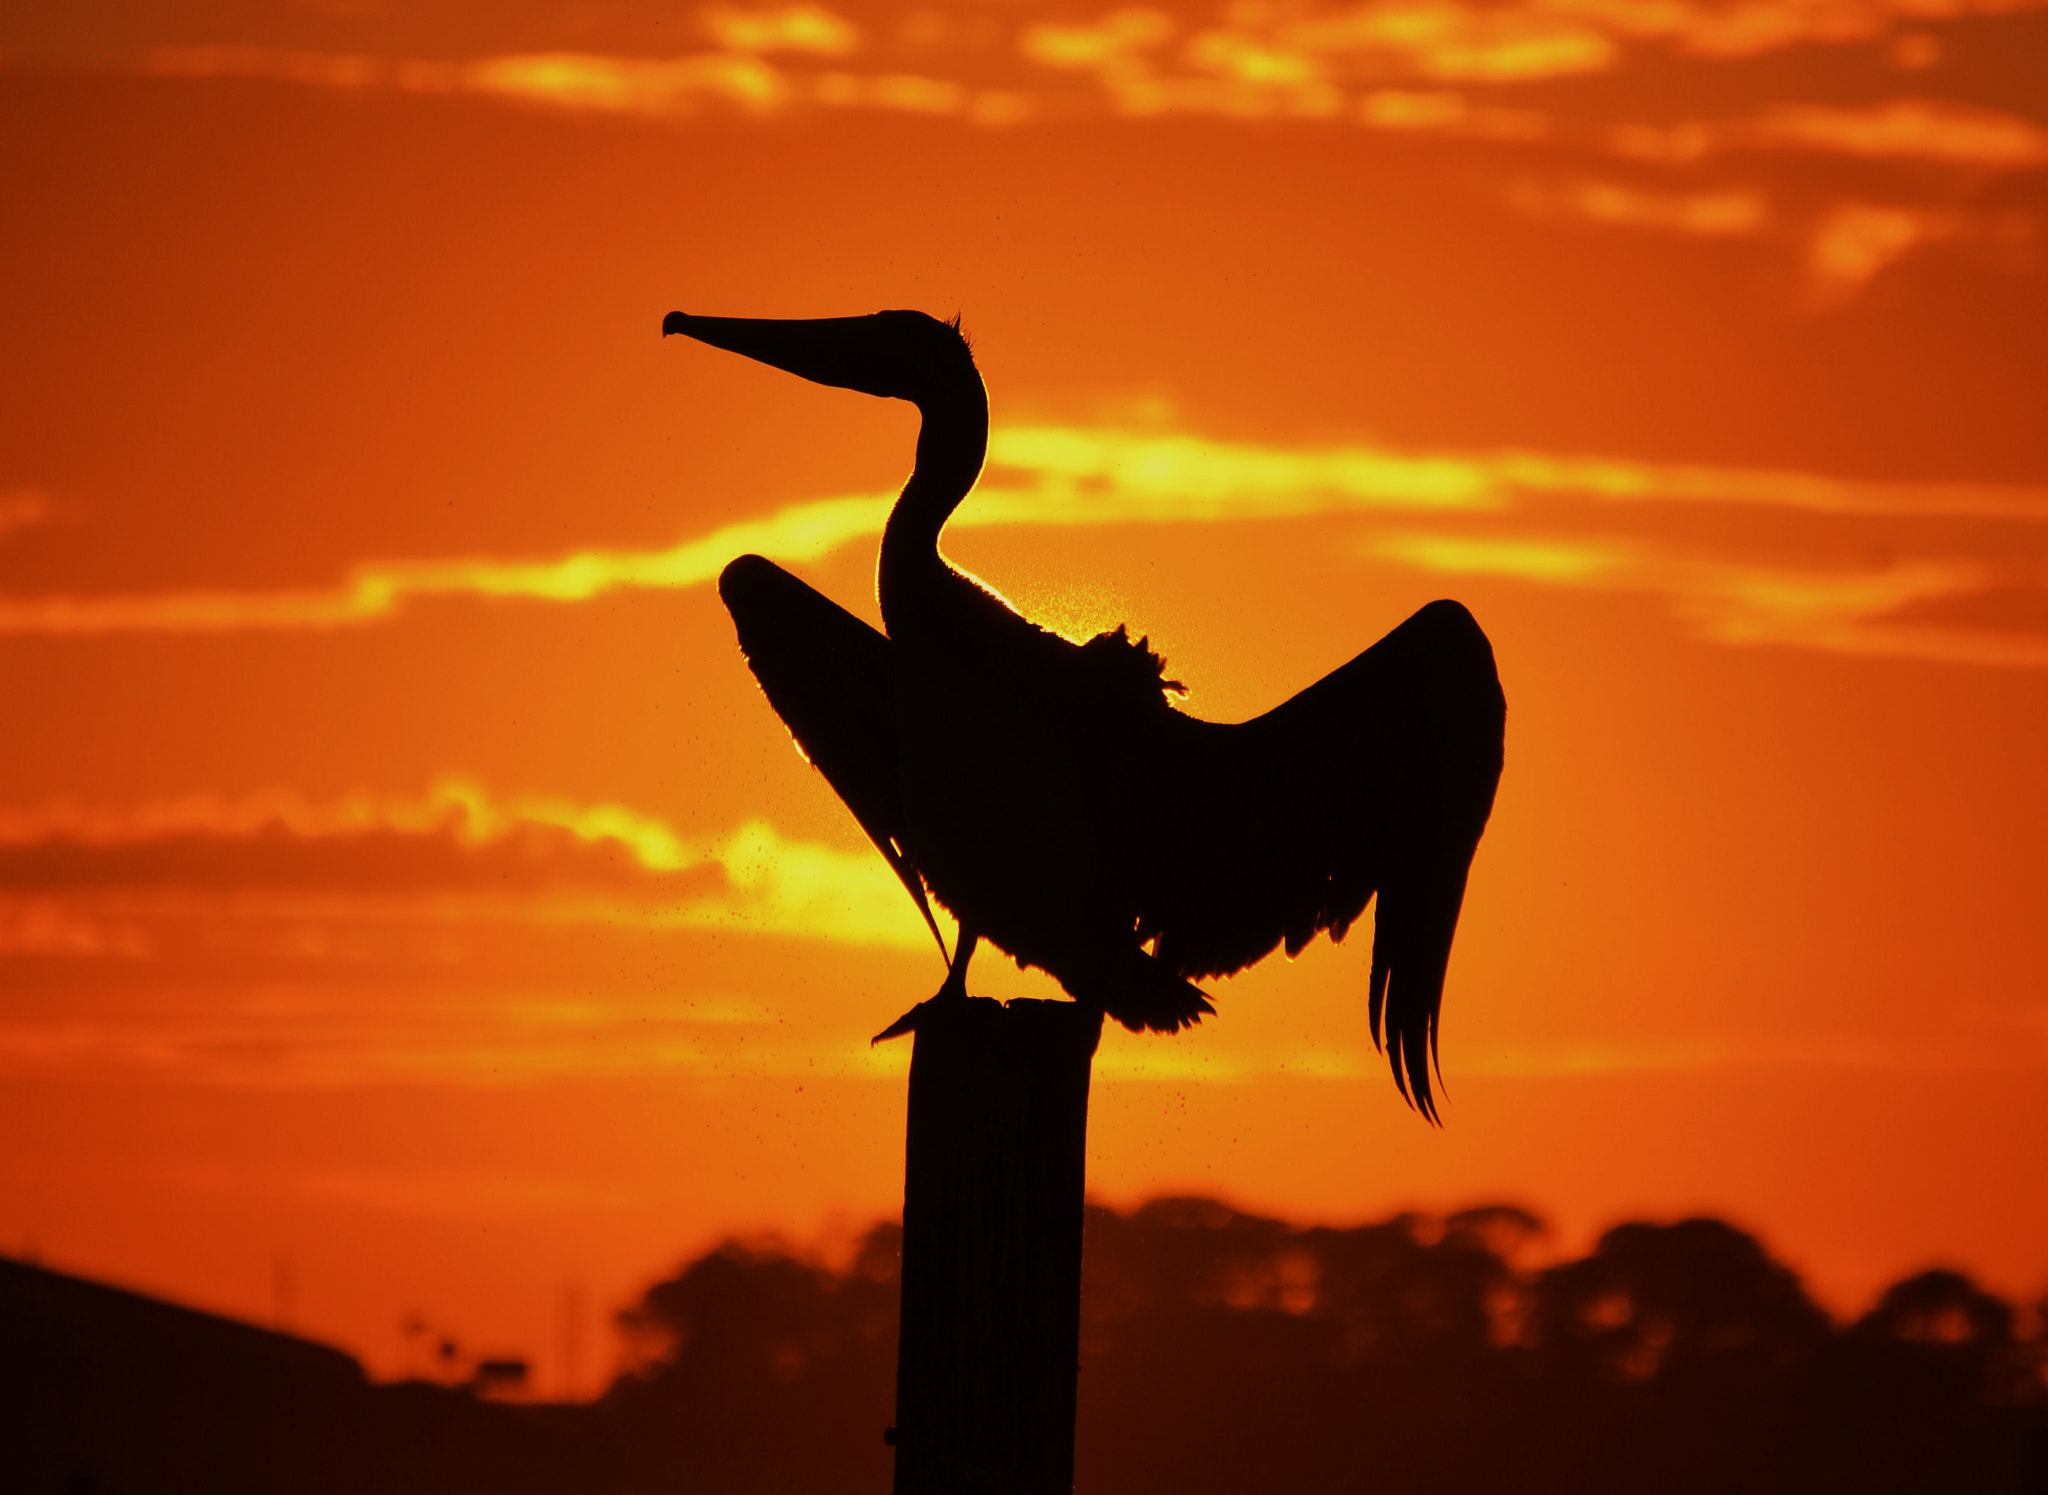 Photograph Avian Eclipse by Michael Fitzsimmons on 500px